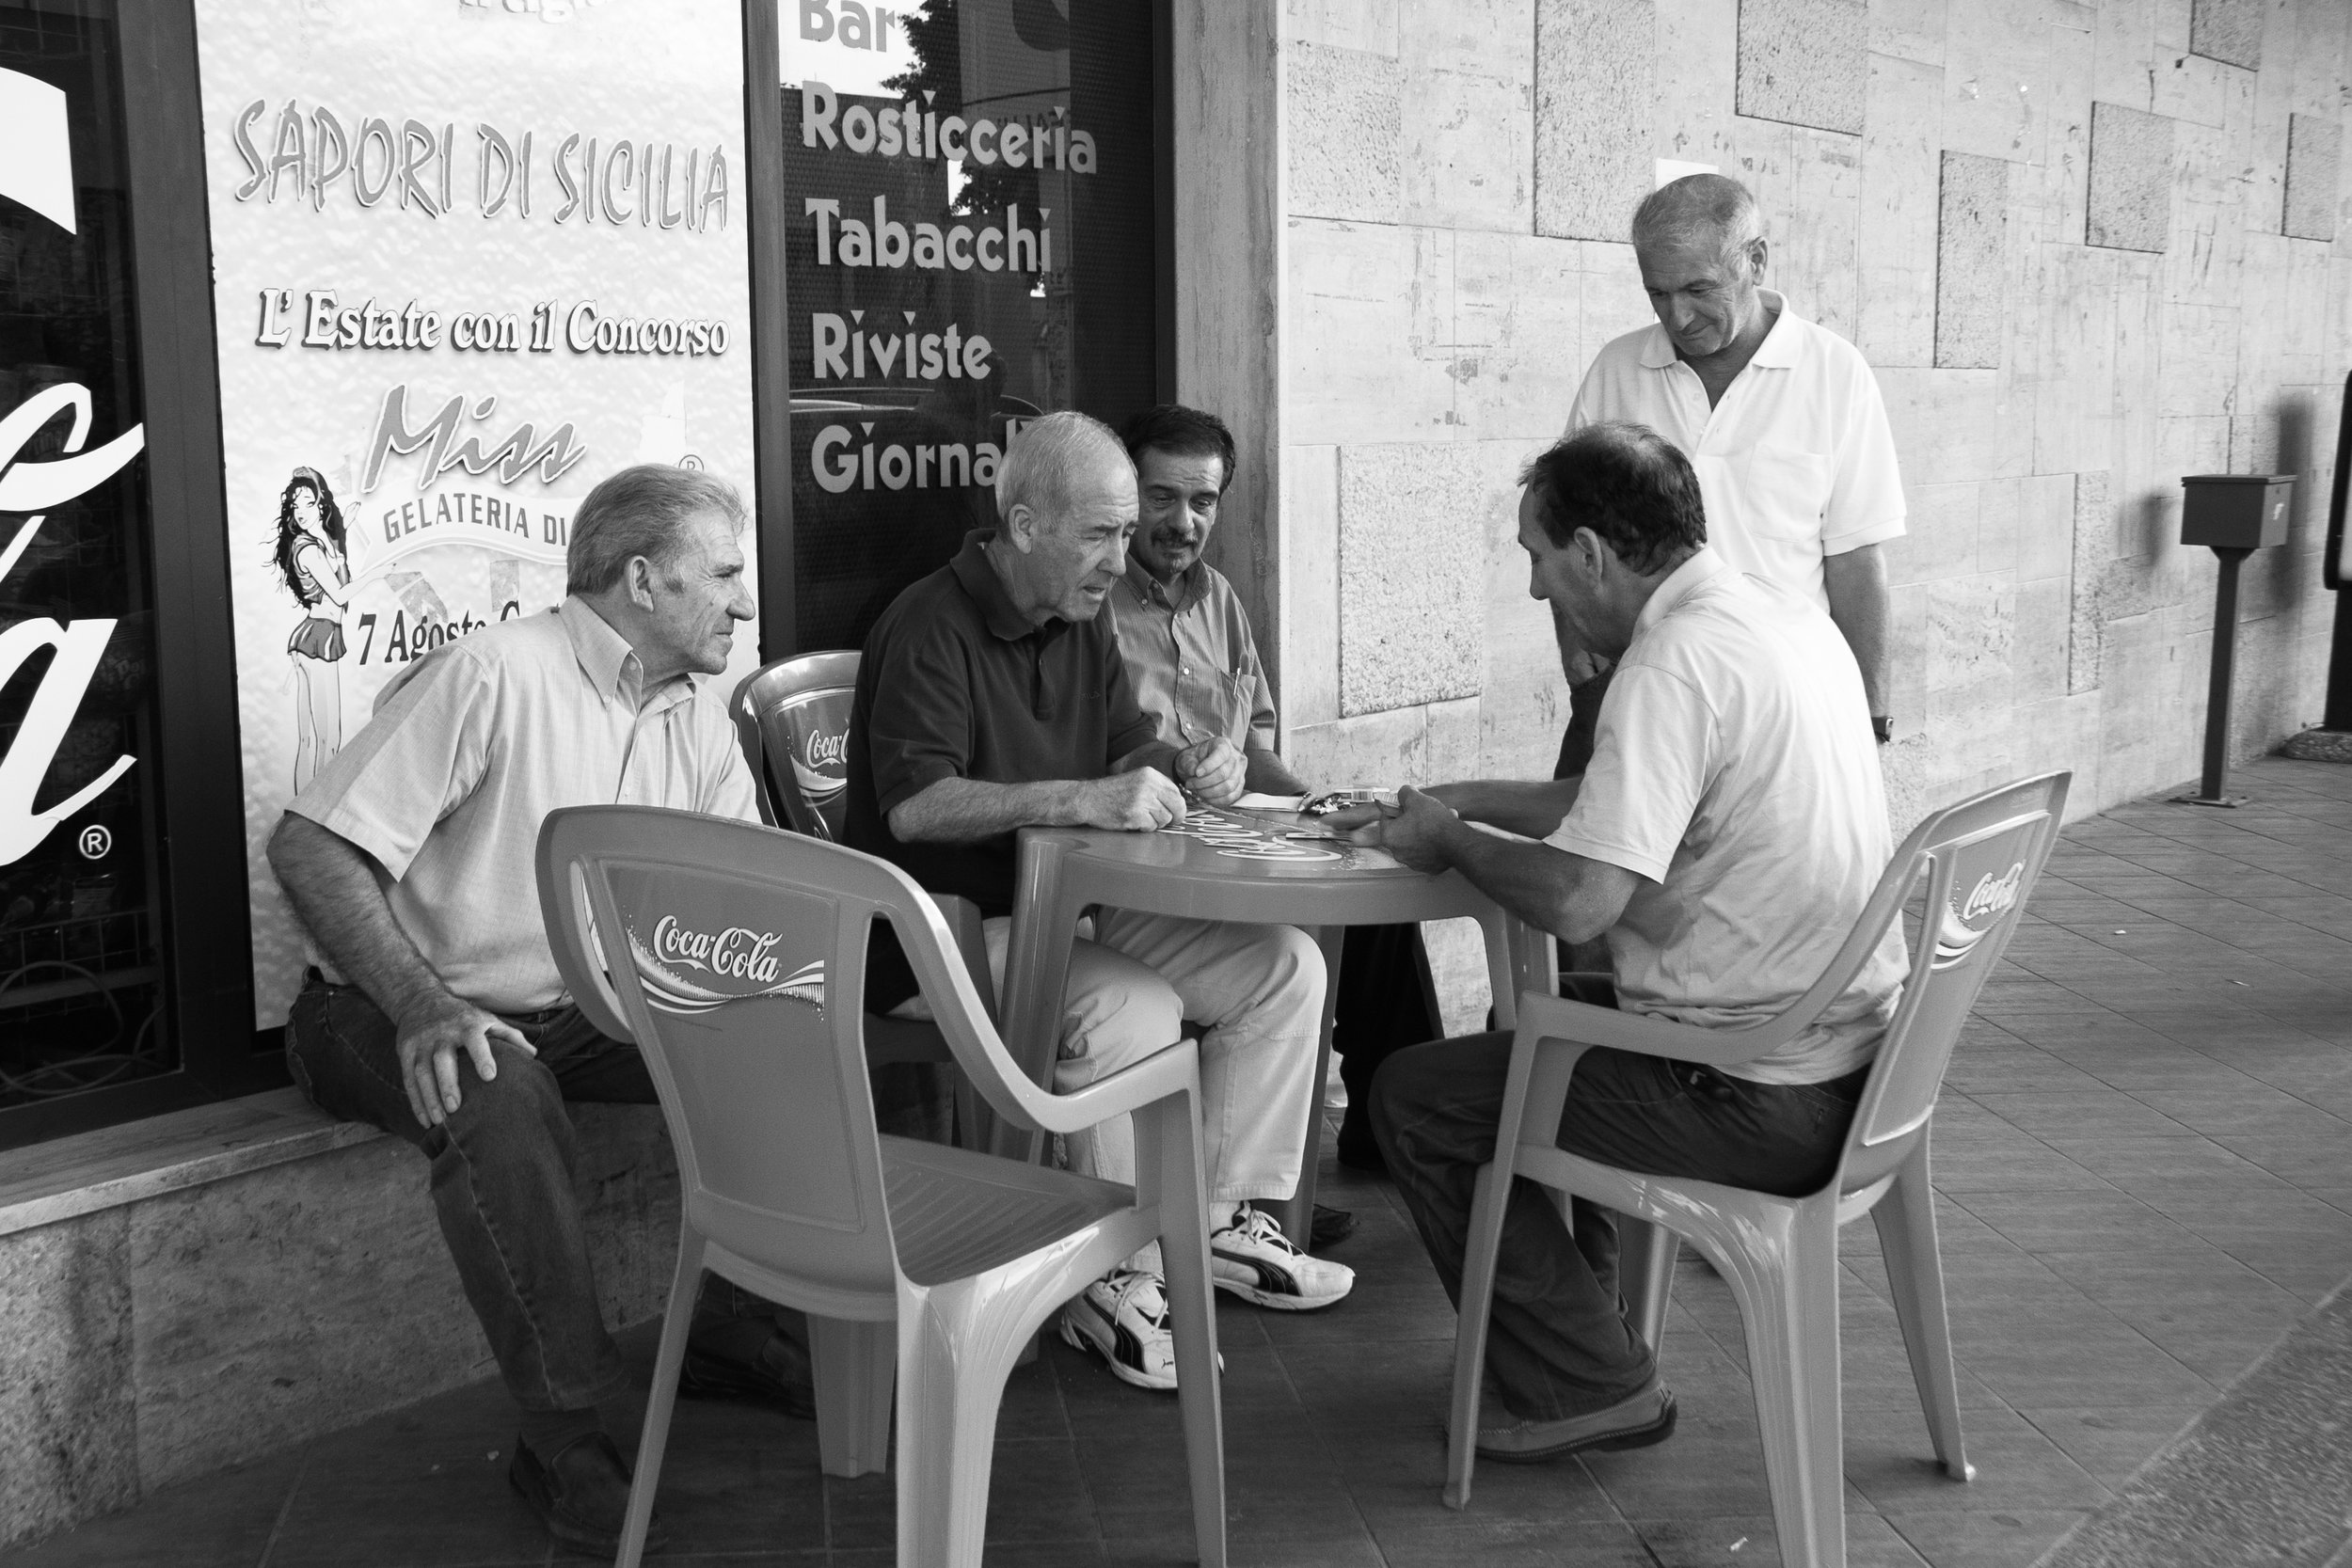 Scopone  in real life: I took this photo of these card sharks in Sicily, 2006.